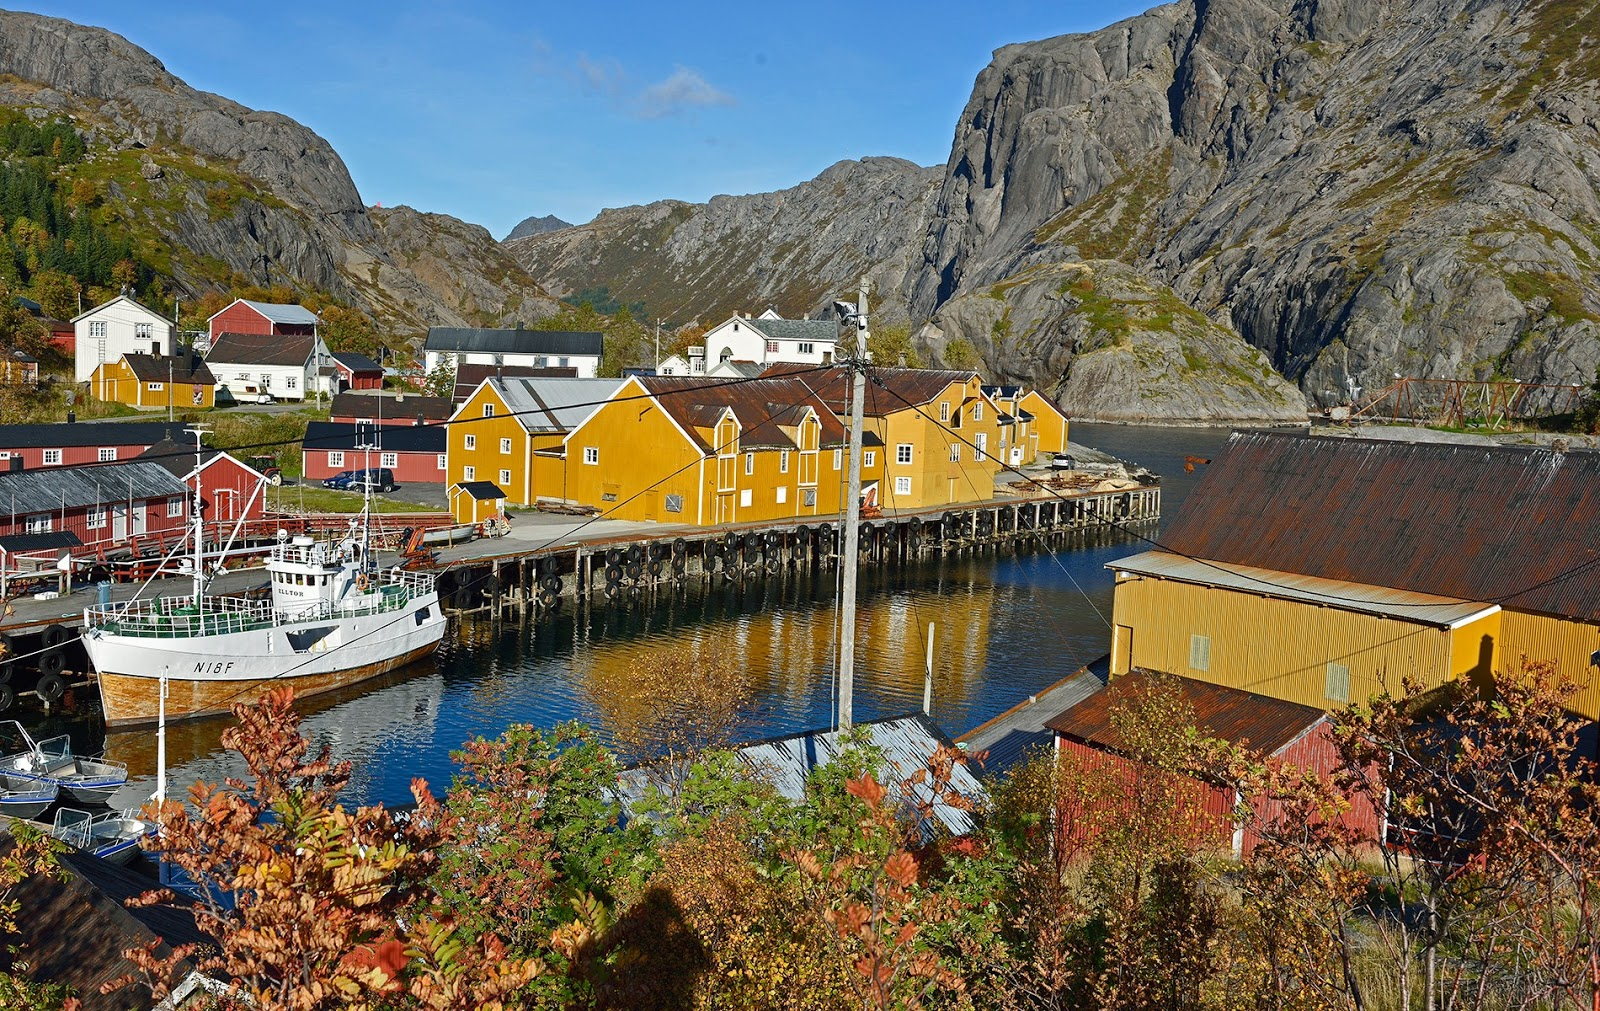 Winsome fishing villages chock-full of charming rorbuer or wooden cabins or wooden cabins in Nusfjord. Many have been refurbished and are now available as holiday rentals for your visit.